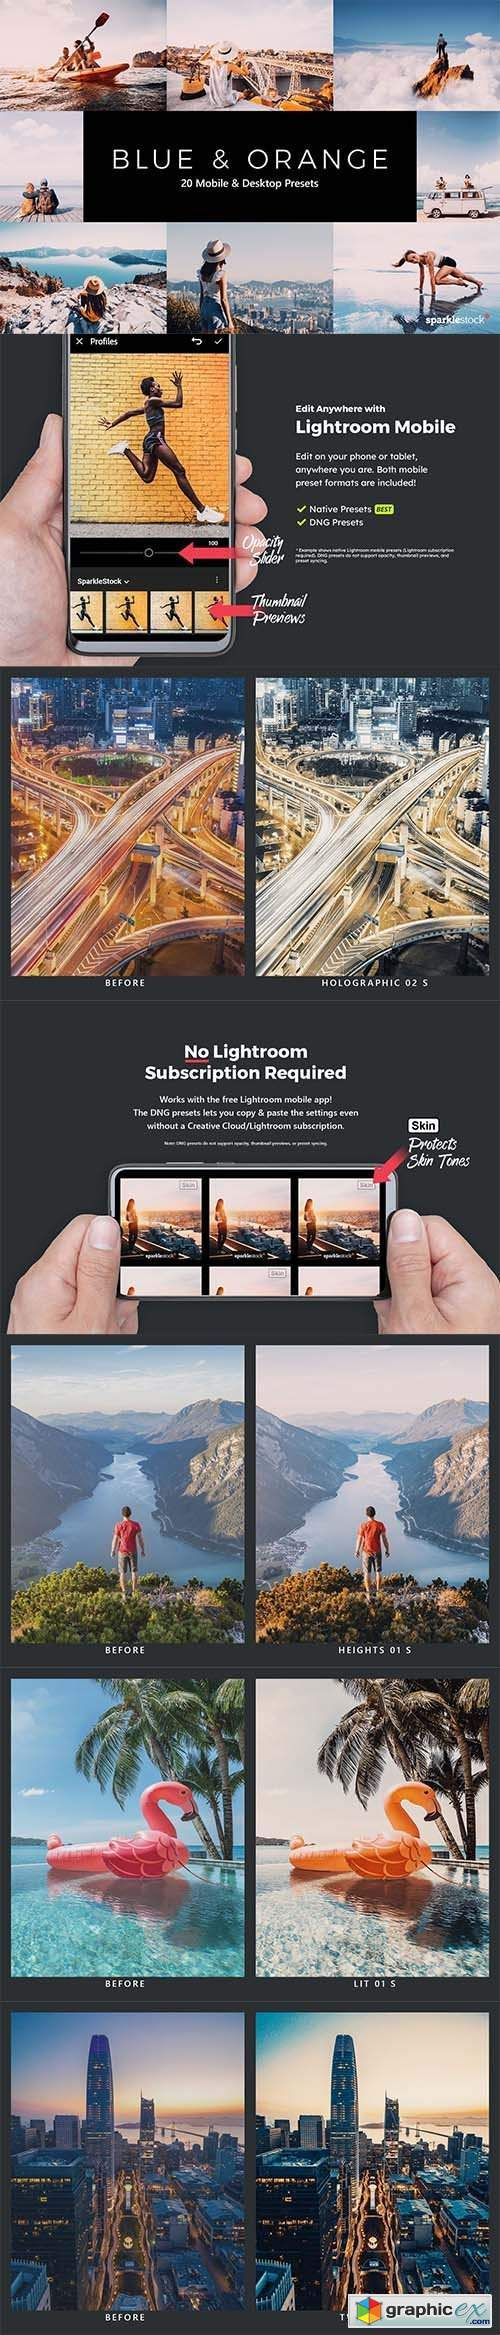 20 Blue and Orange Lightroom Presets & LUTs